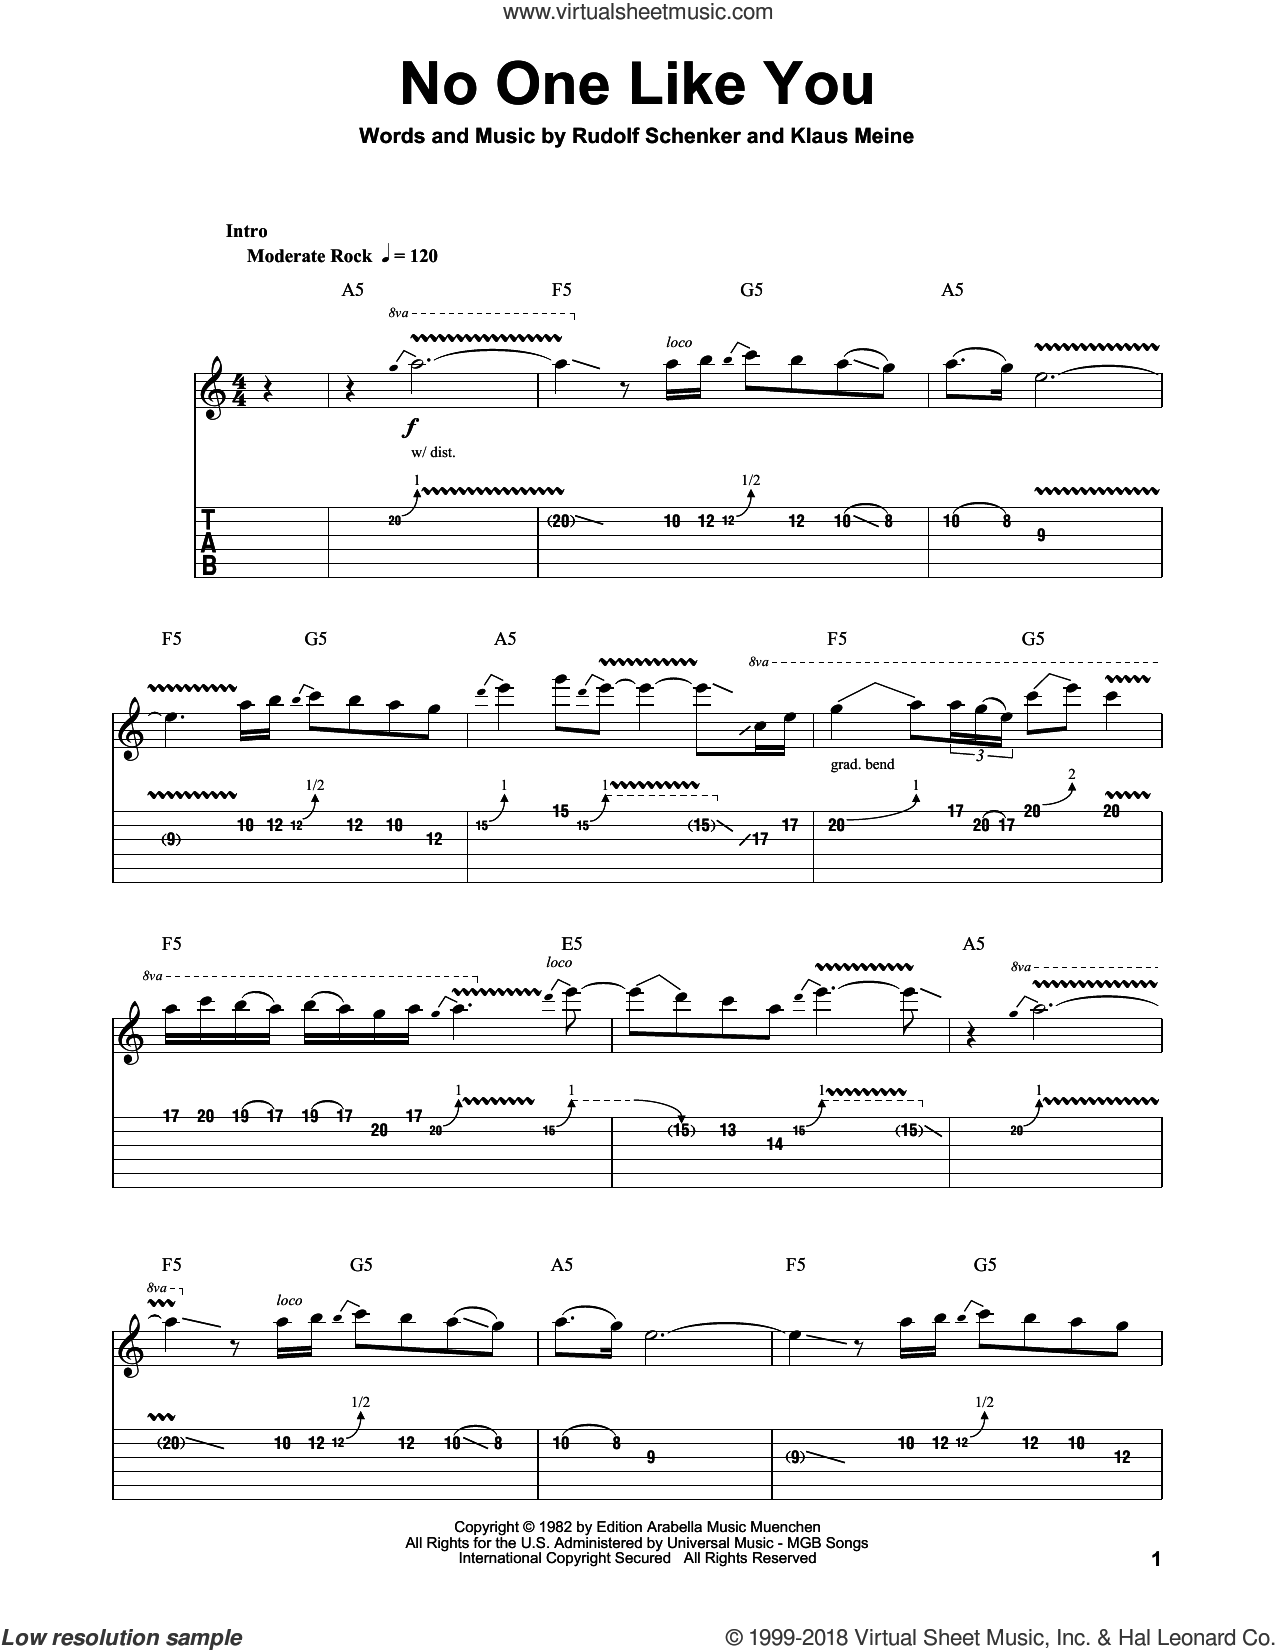 No One Like You sheet music for guitar (tablature, play-along) by Rudolf Schenker